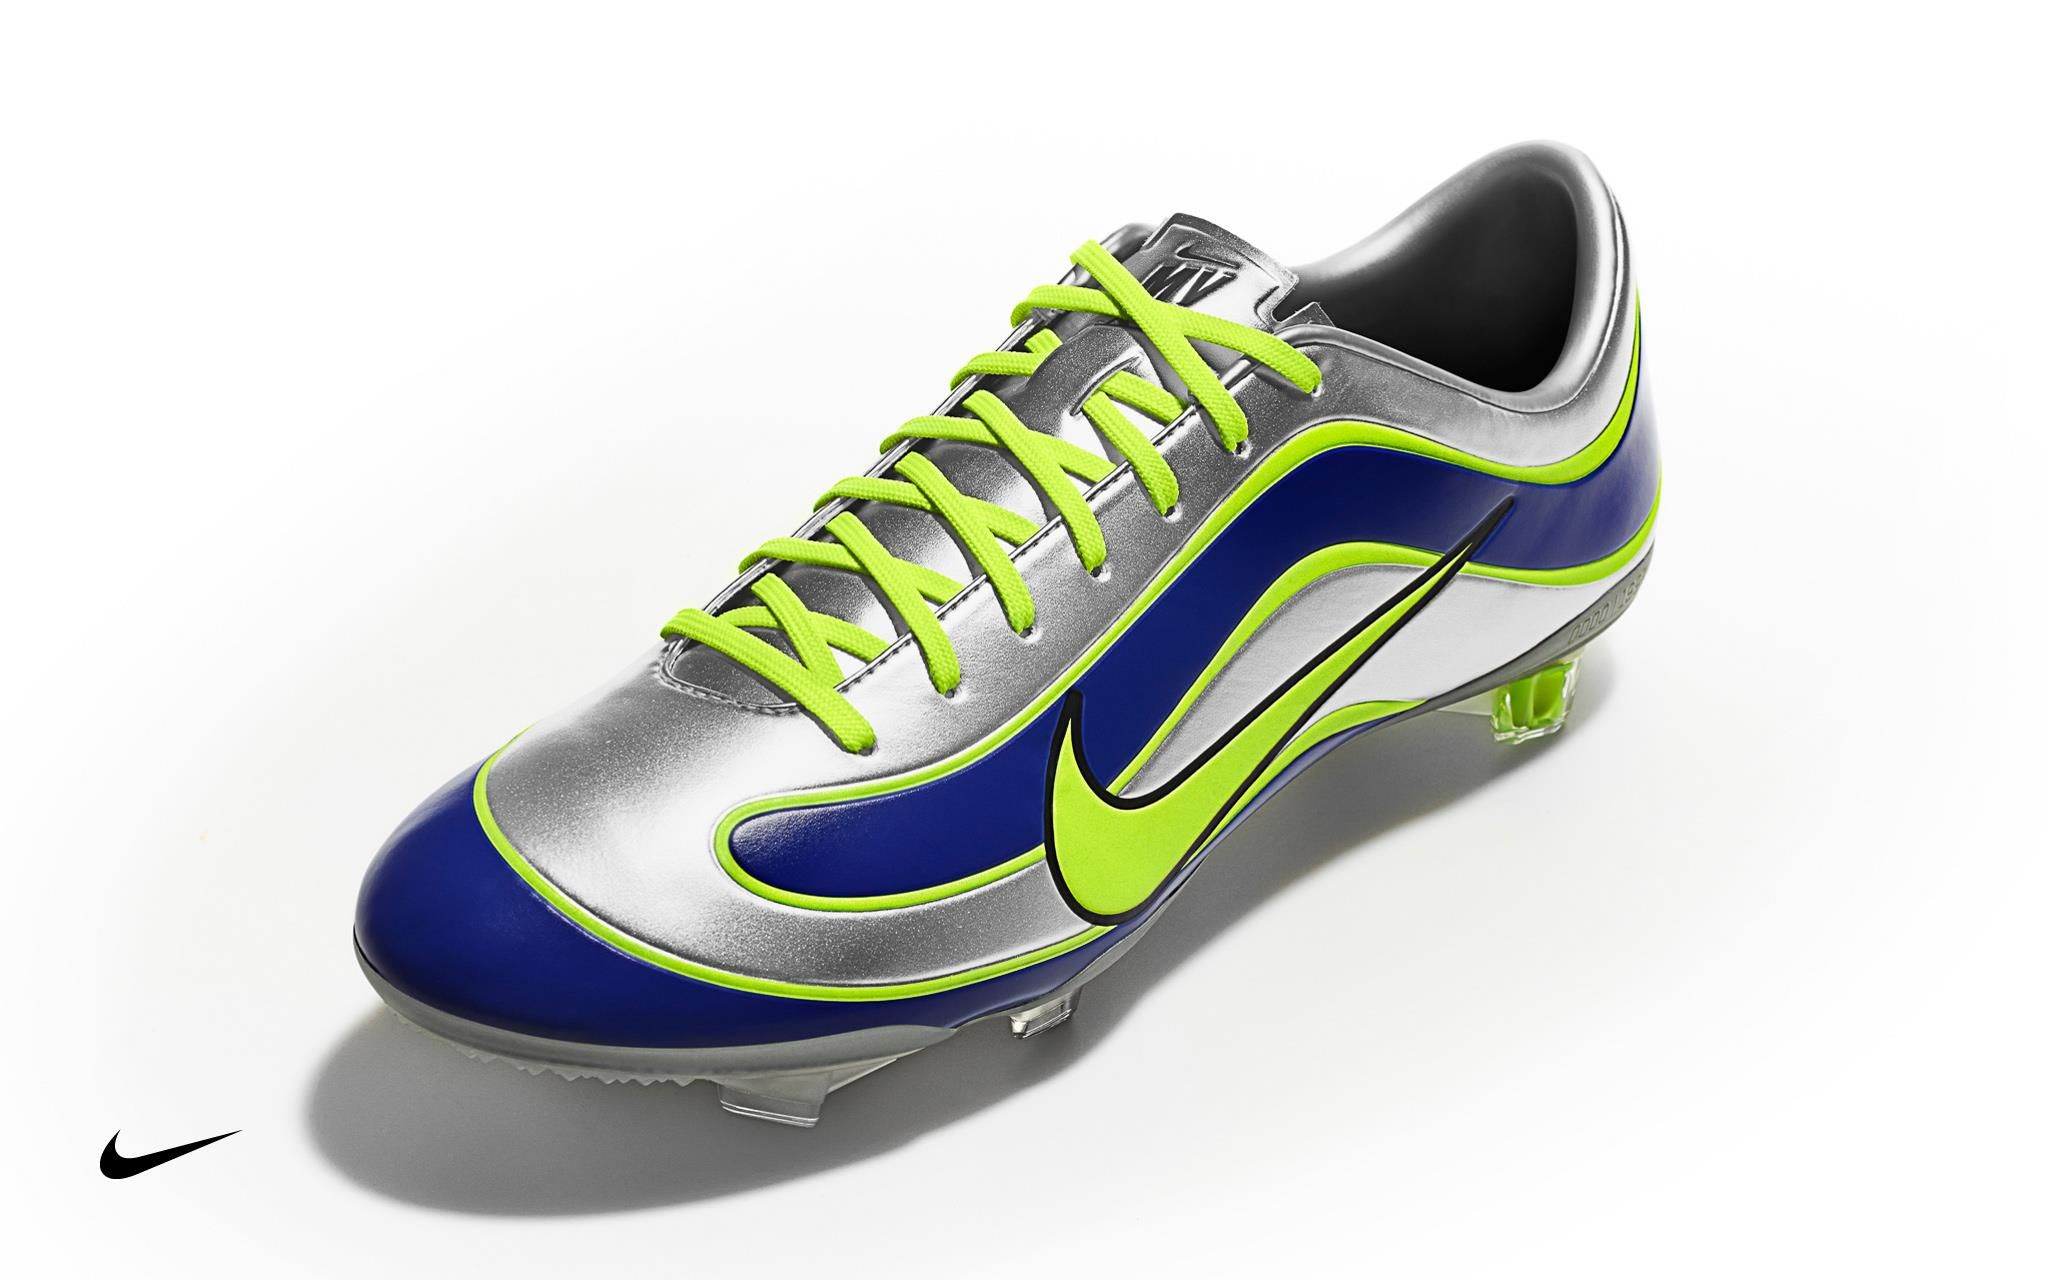 newest b9550 aeca9 Nike Mercurial Vapor - XV aniversario    Ronaldo  R9  sports  football